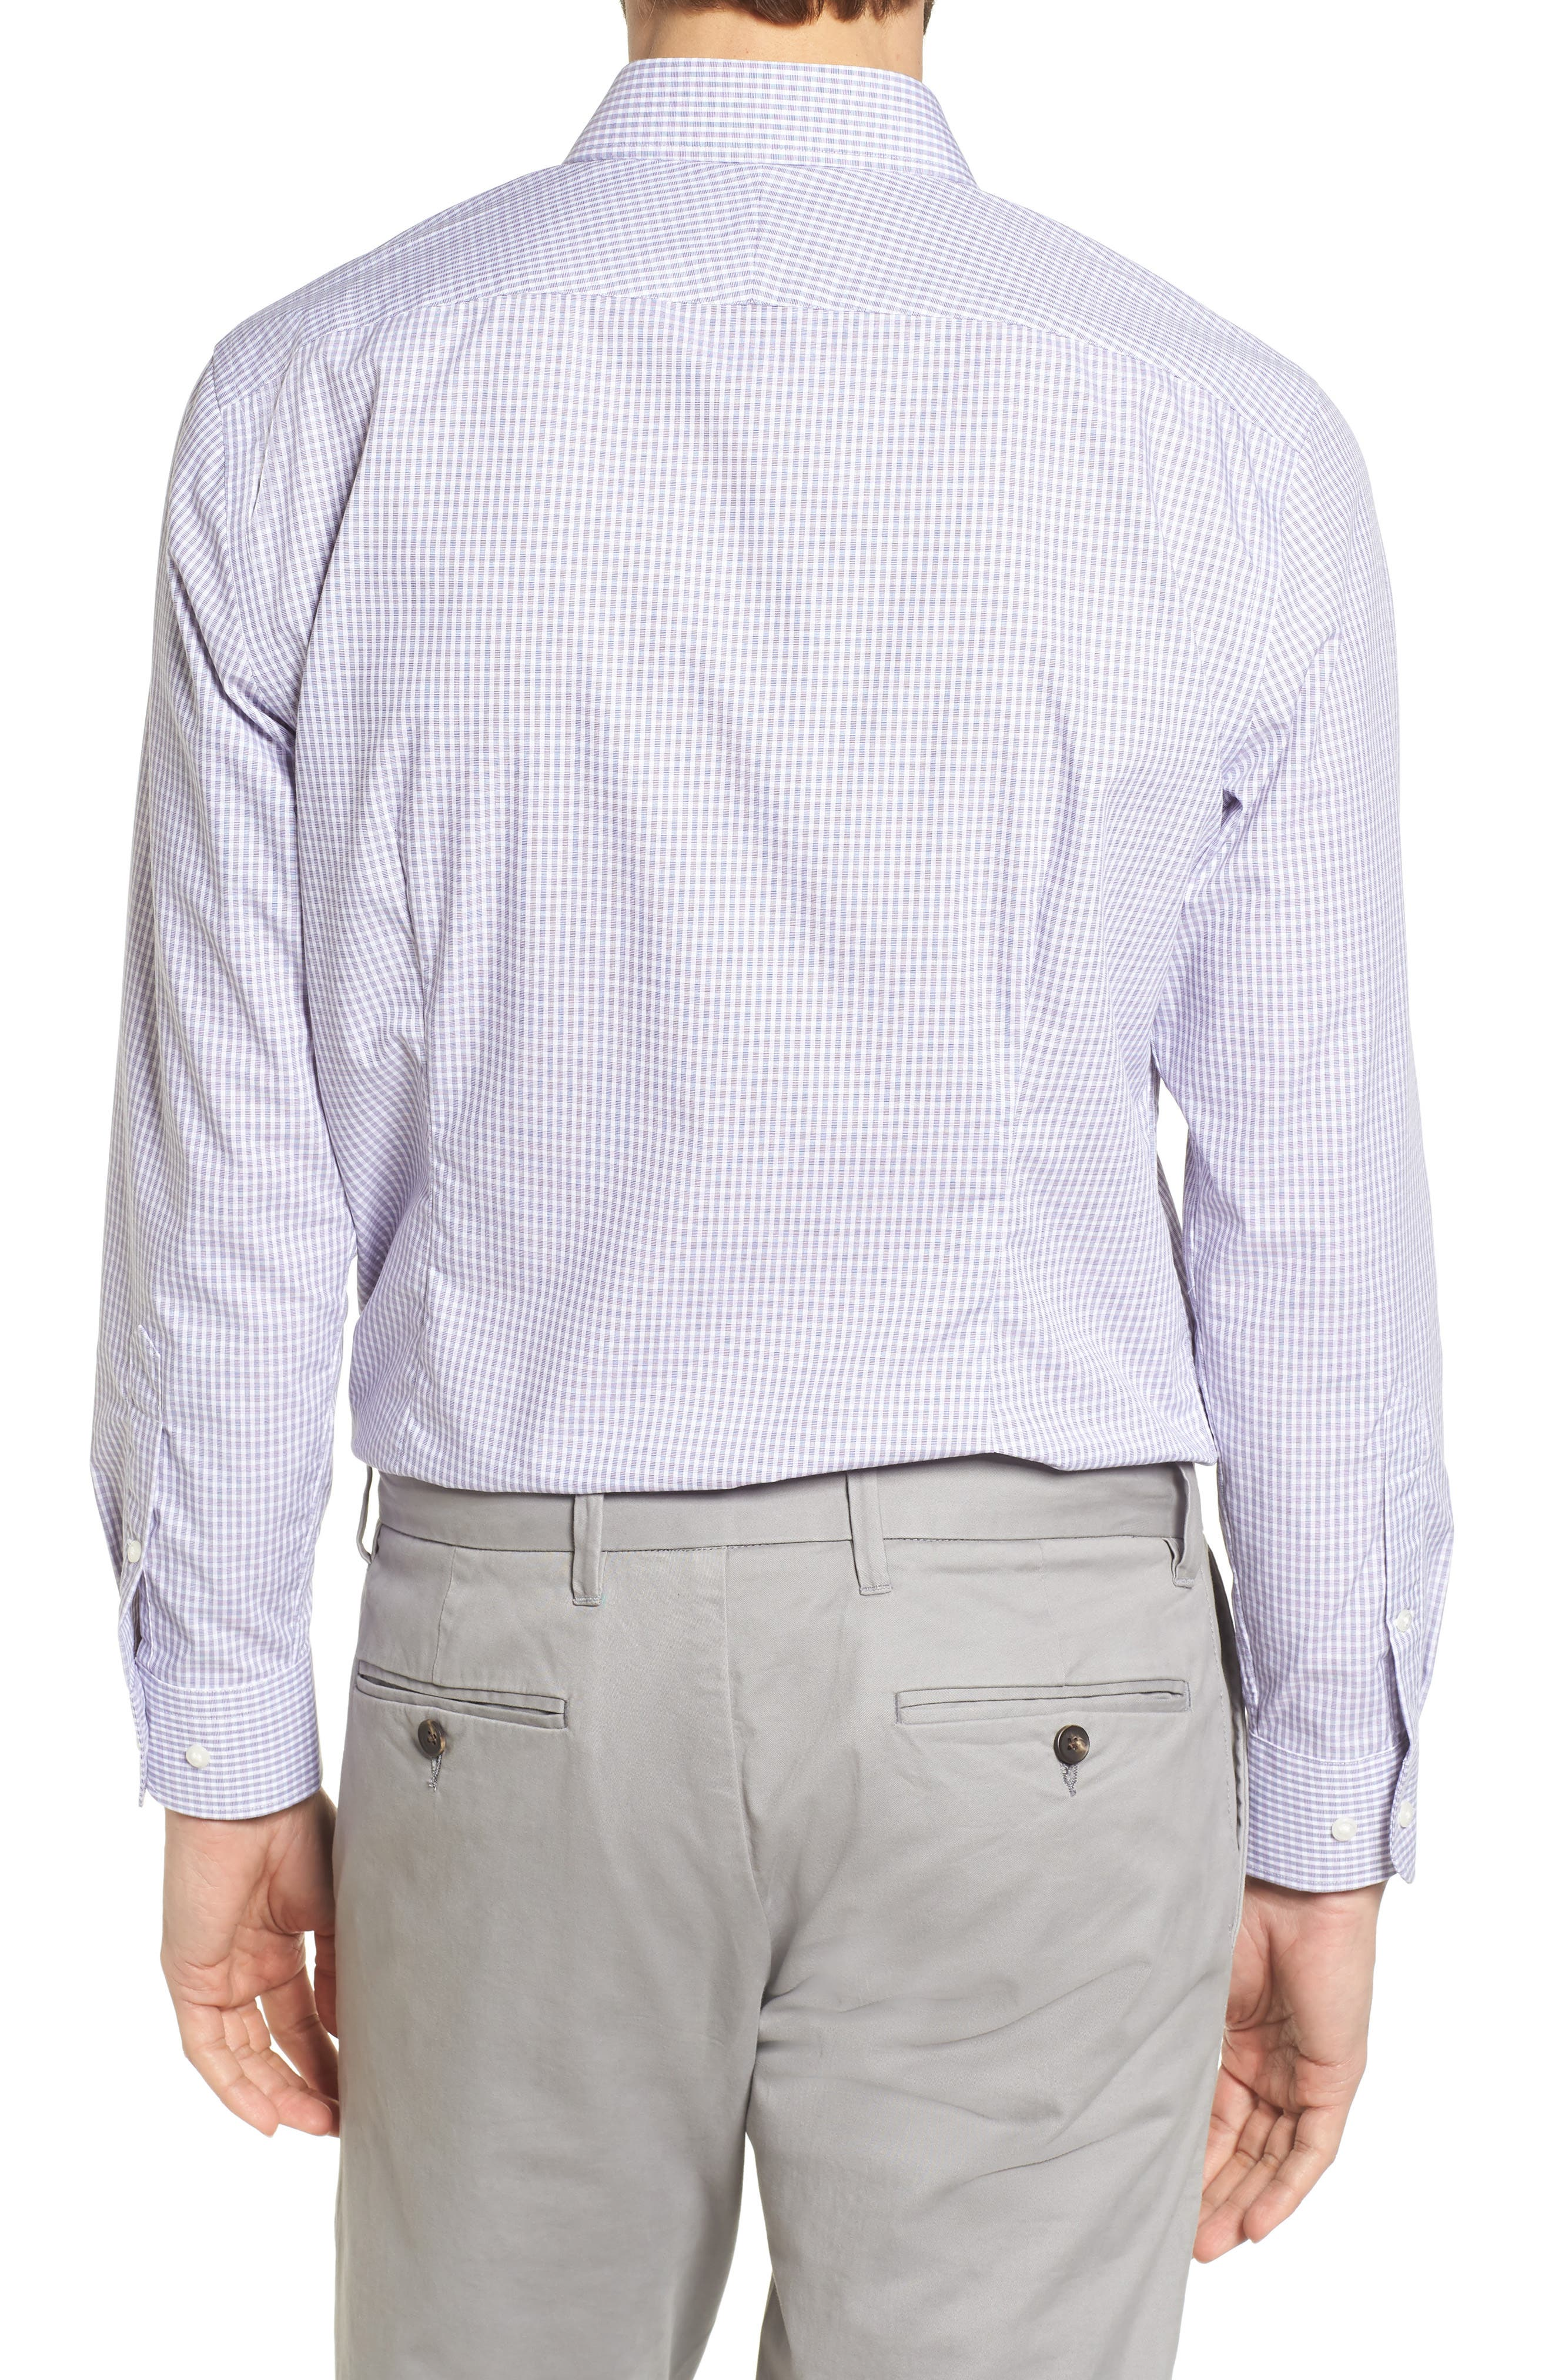 Alternate Image 2  - Nordstrom Men's Shop Extra Trim Fit Non-Iron Check Dress Shirt